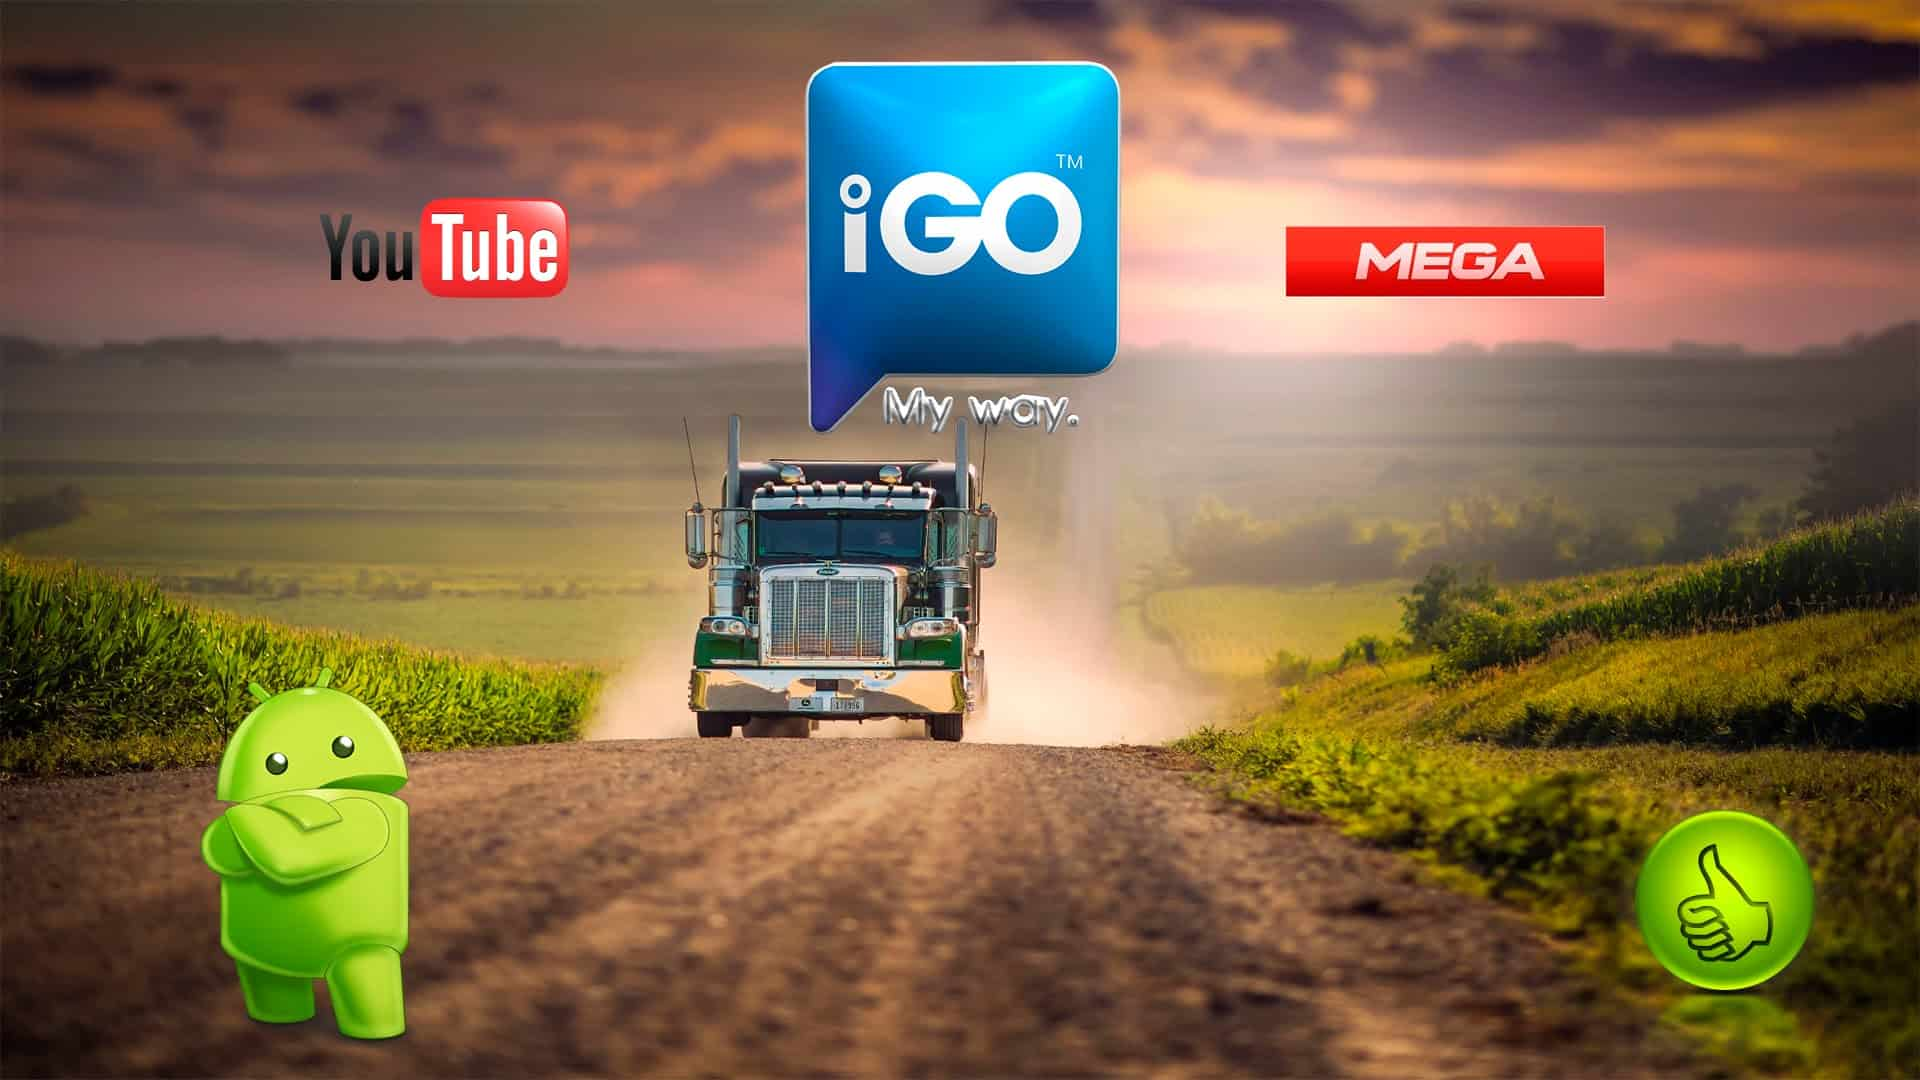 igo 8 maps 2018 download